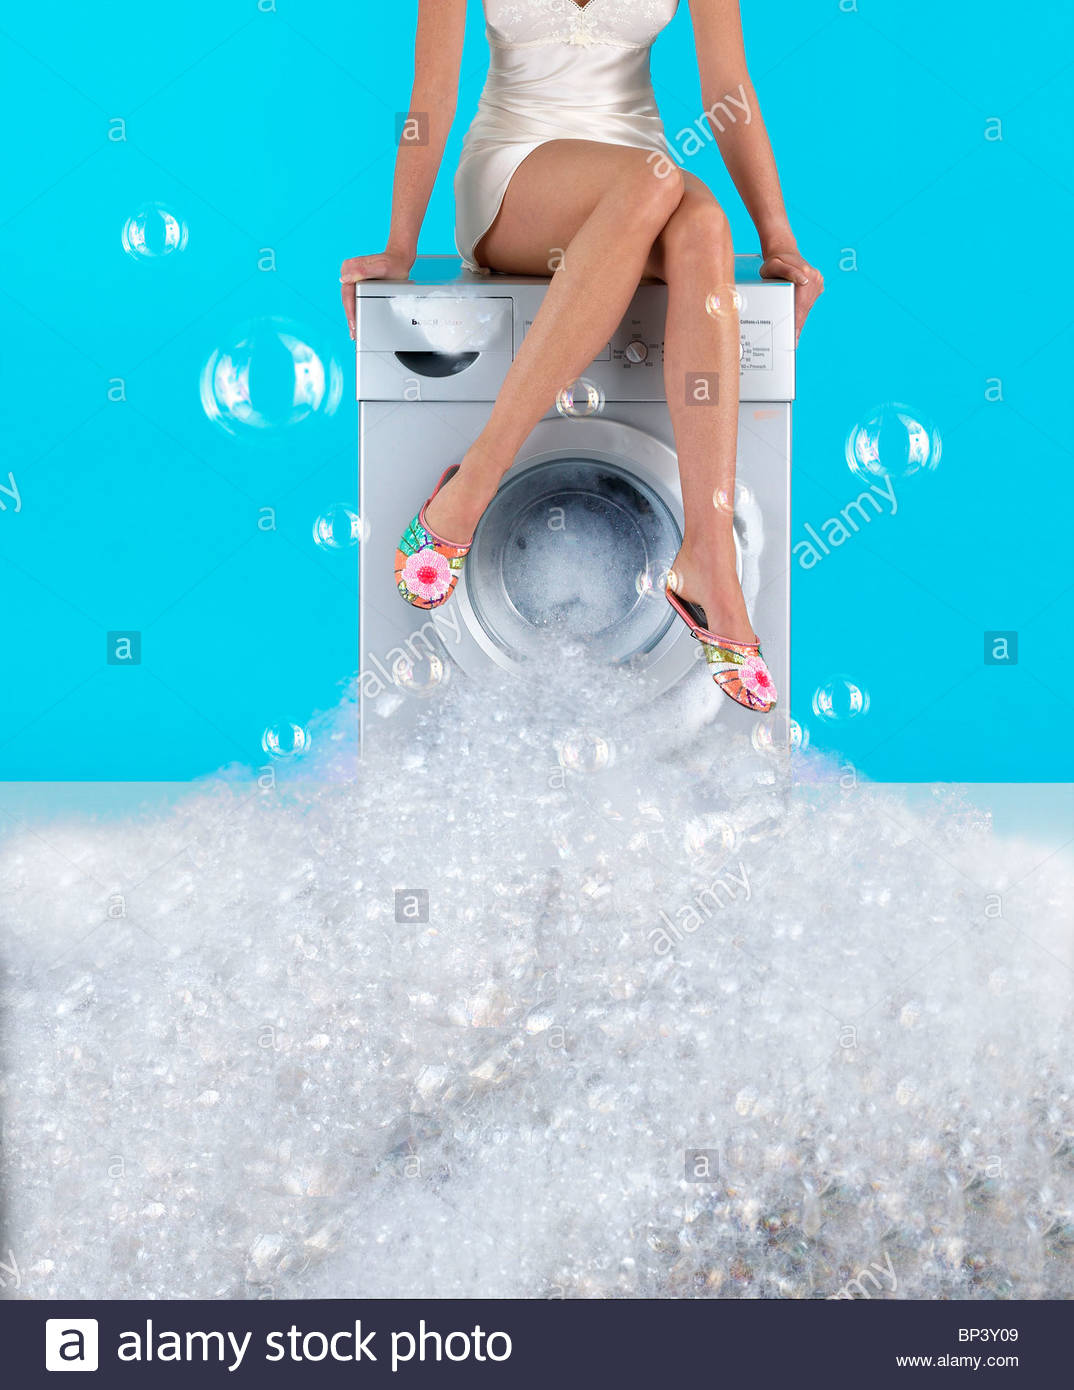 A Woman Sits On A Washing Machine That Is Overflowing With